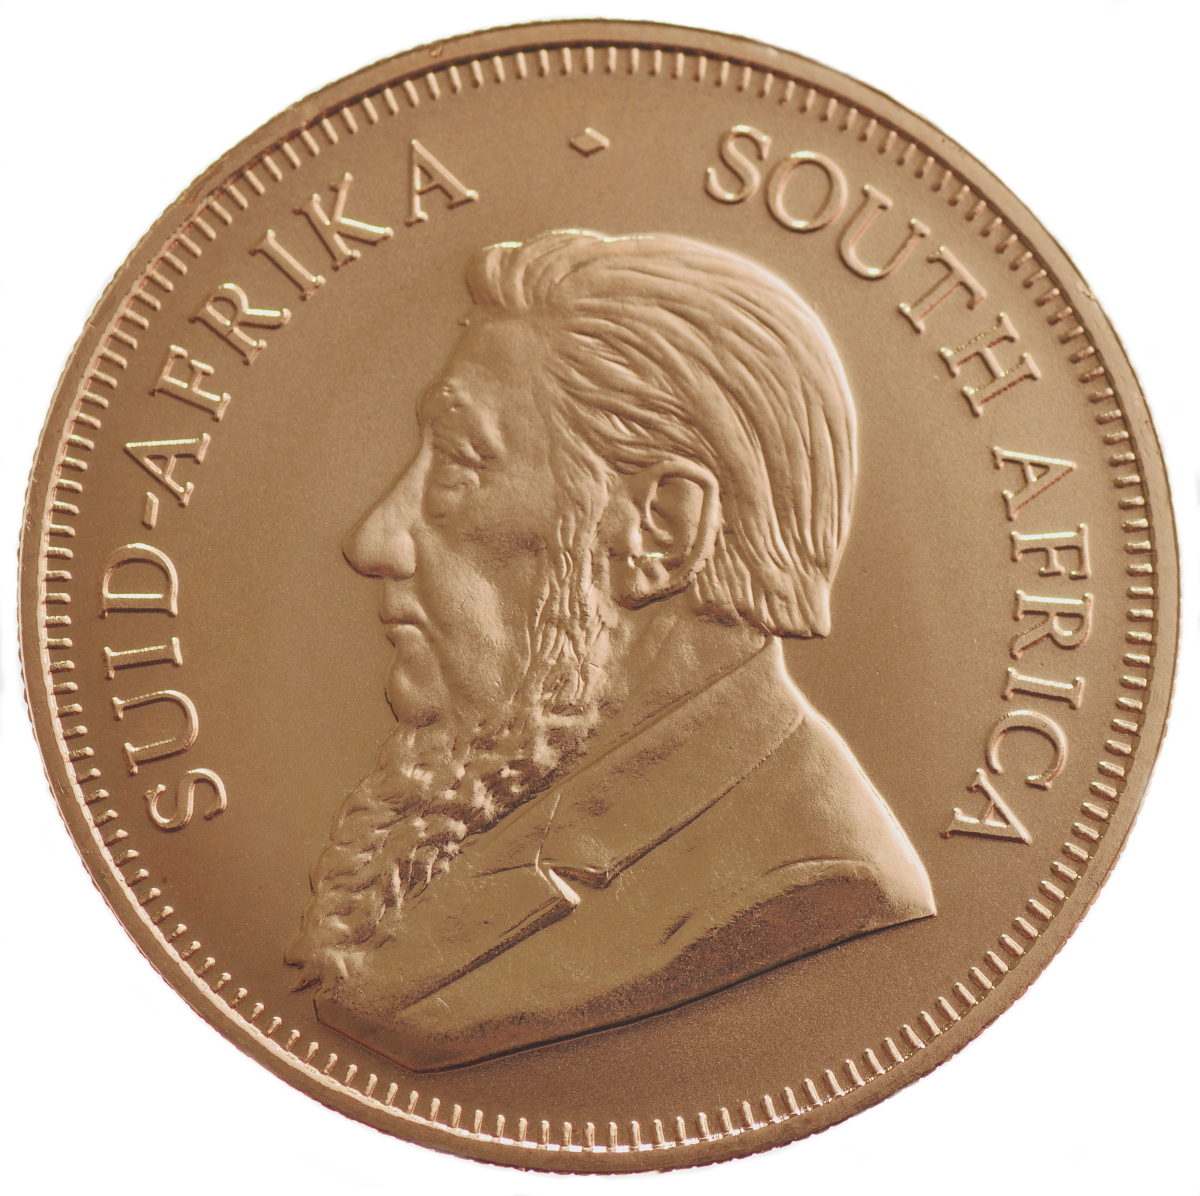 Krugerrand Buy Krugerrands Bullionbypost 174 From 163 997